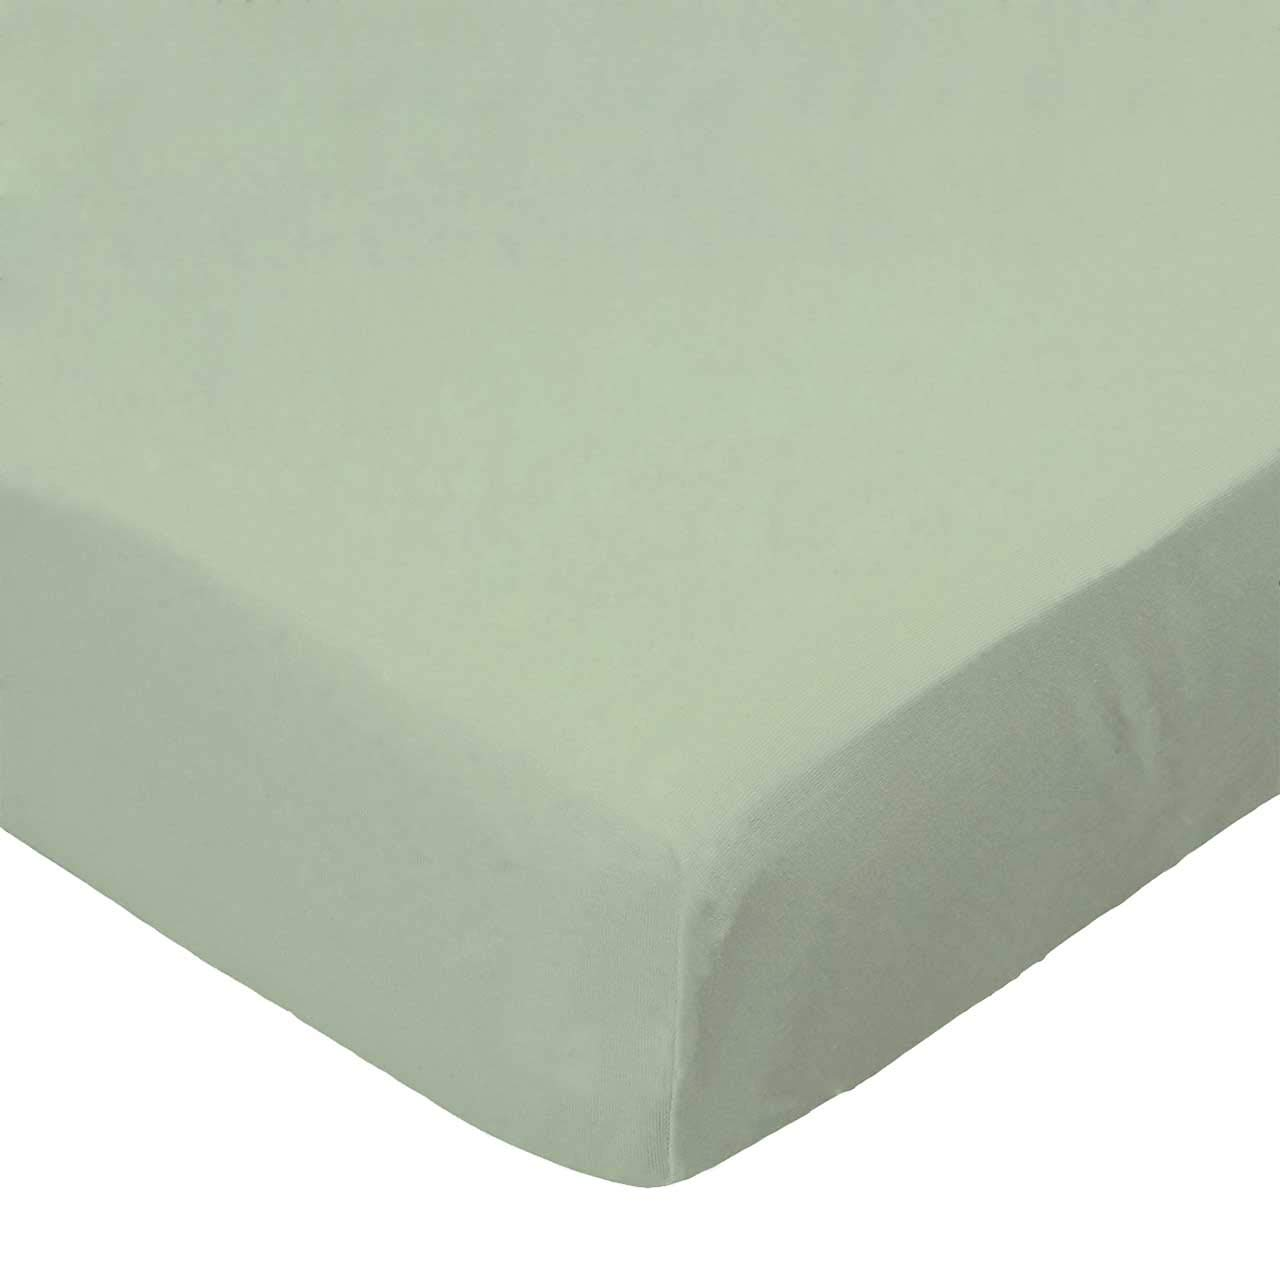 SheetWorld Fitted Pack N Play Sheet - Flannel - Sage - Made In USA